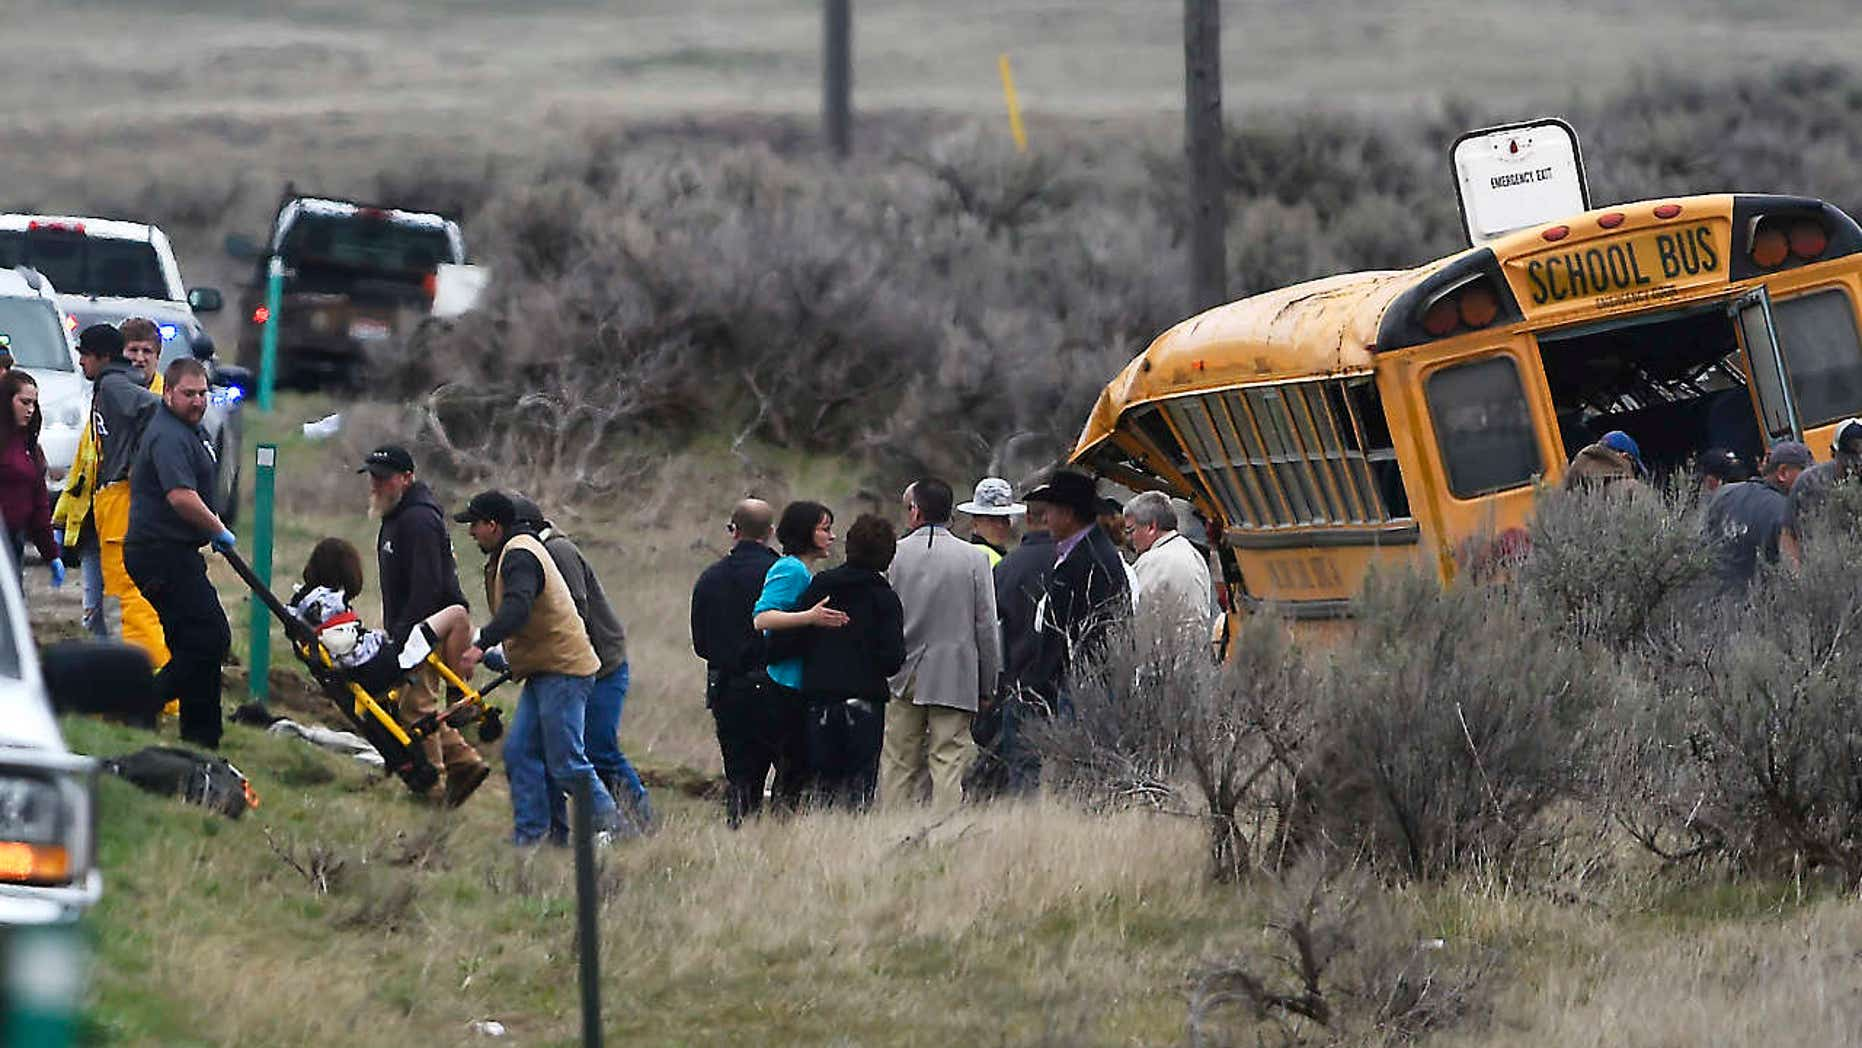 Emergency personnel help to remove passengers after school bus that Tuesday, April 18, 2017, west of Richfield, Idaho.